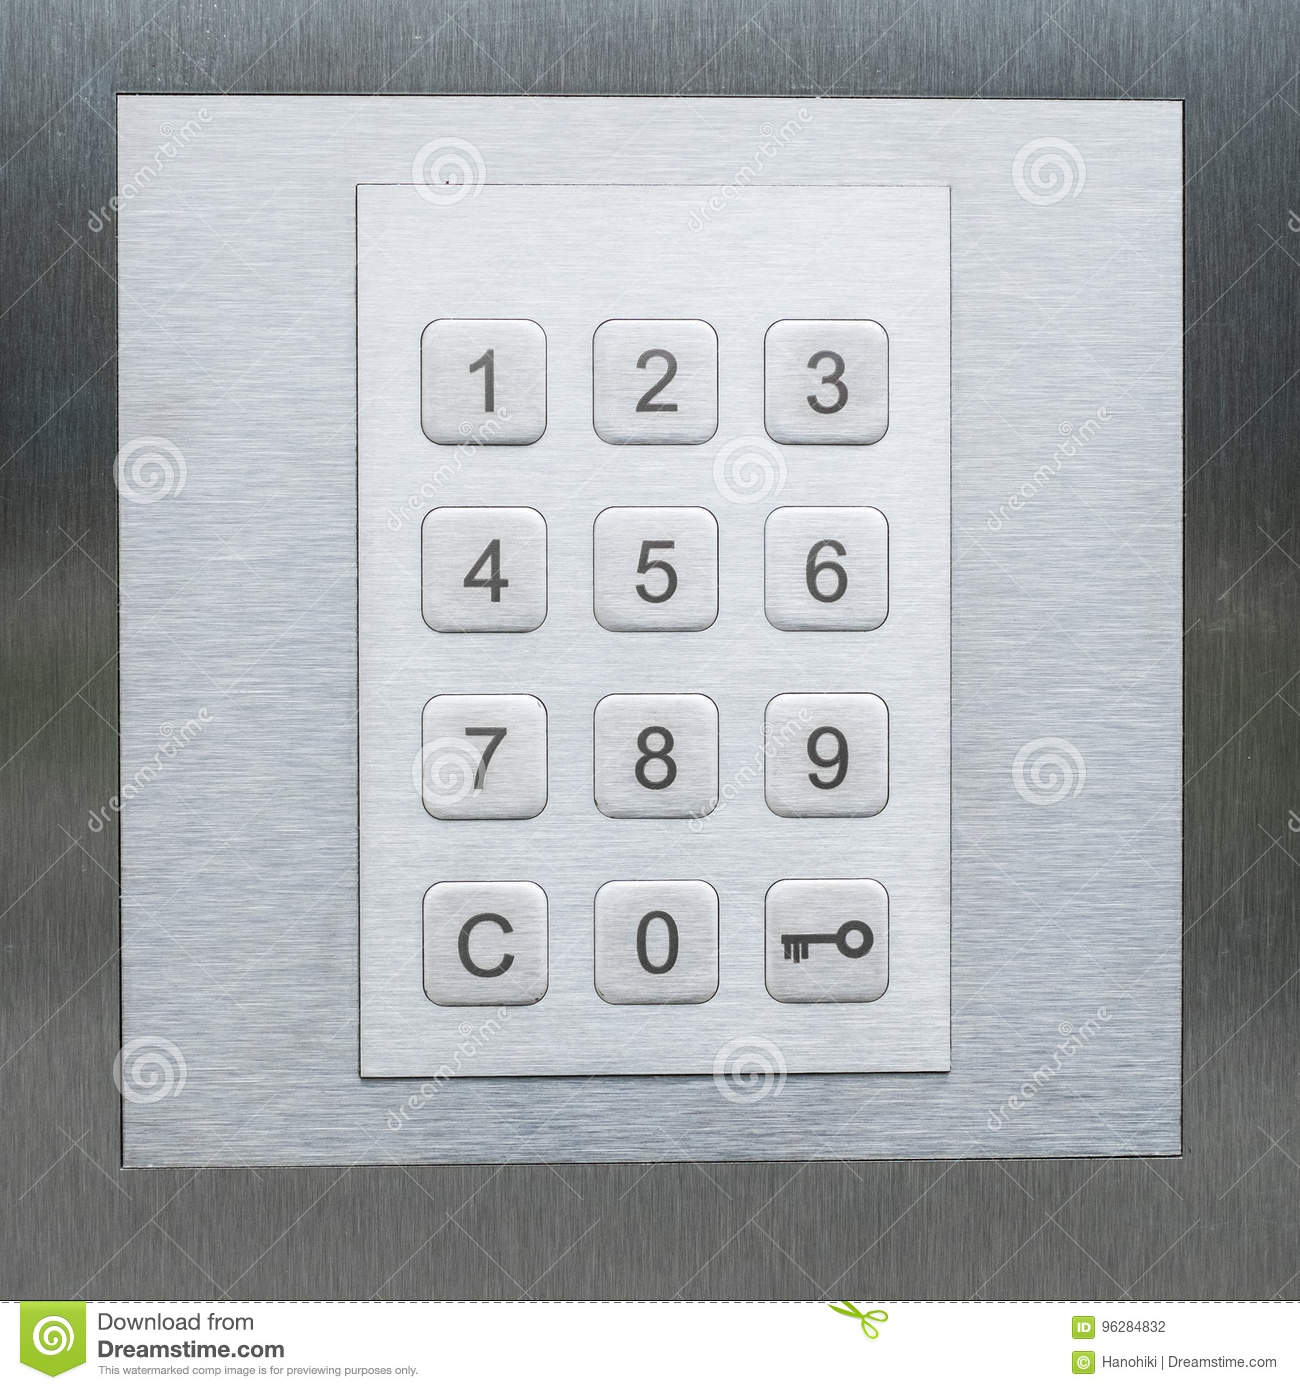 Keypad Numbers And Key Smbol Door Security System Stock